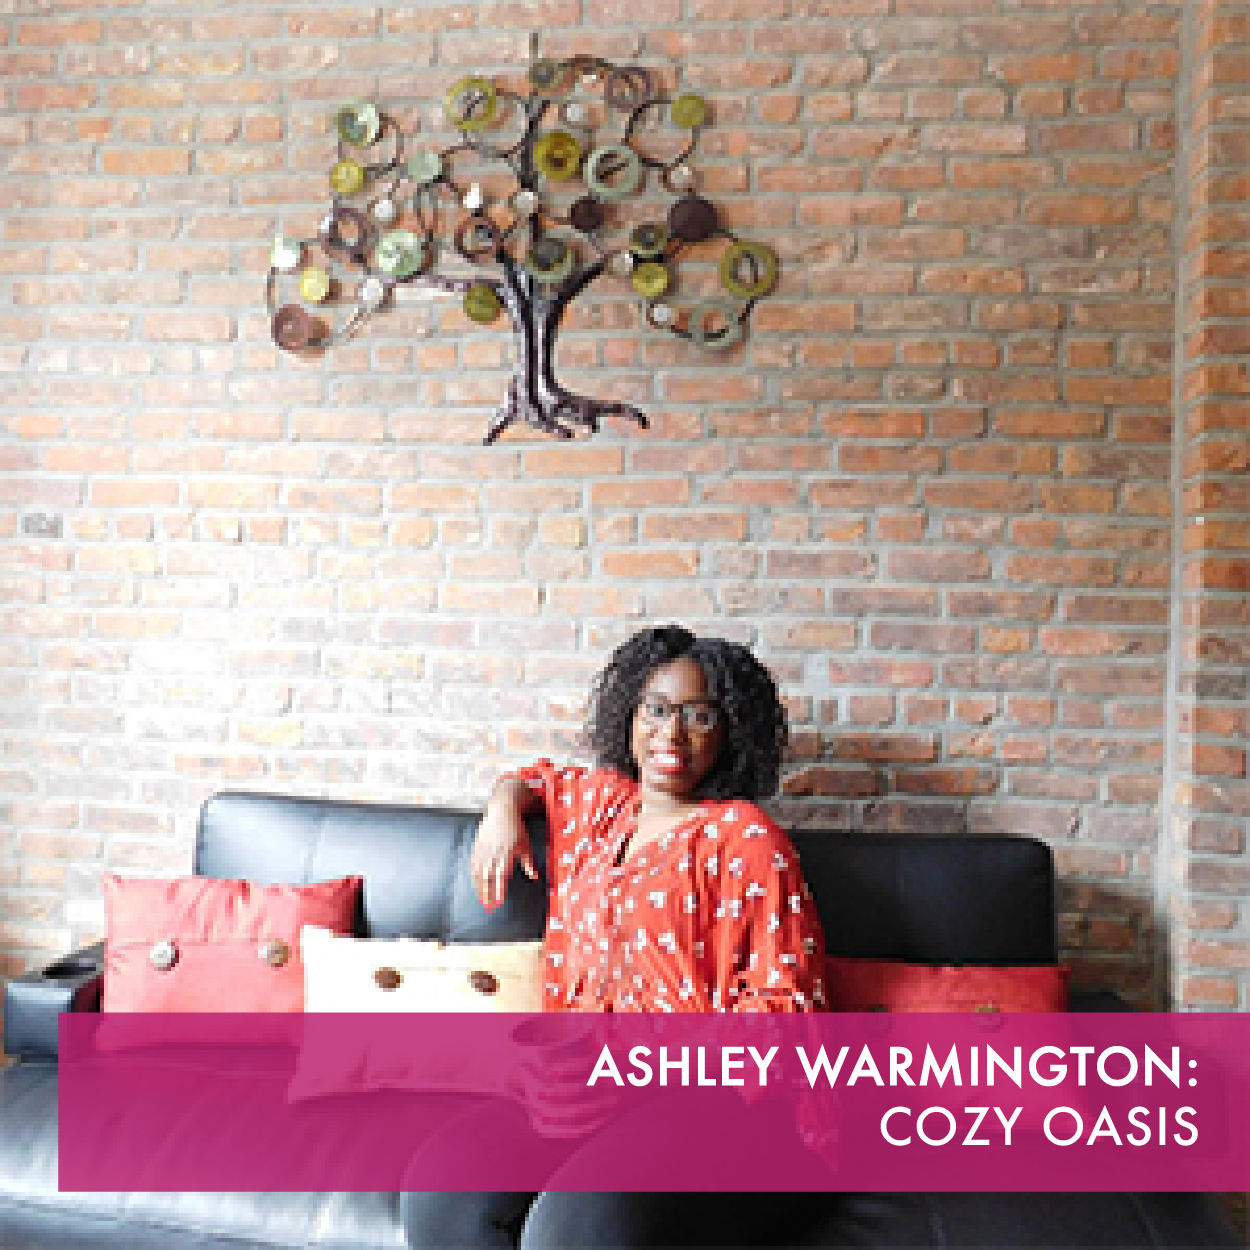 Cozy Oasis provides hospitality services to people renting out their homes through Airbnb agents. Cozy Oasis handles the essentials like check-in, check-out, cleaning and linens.